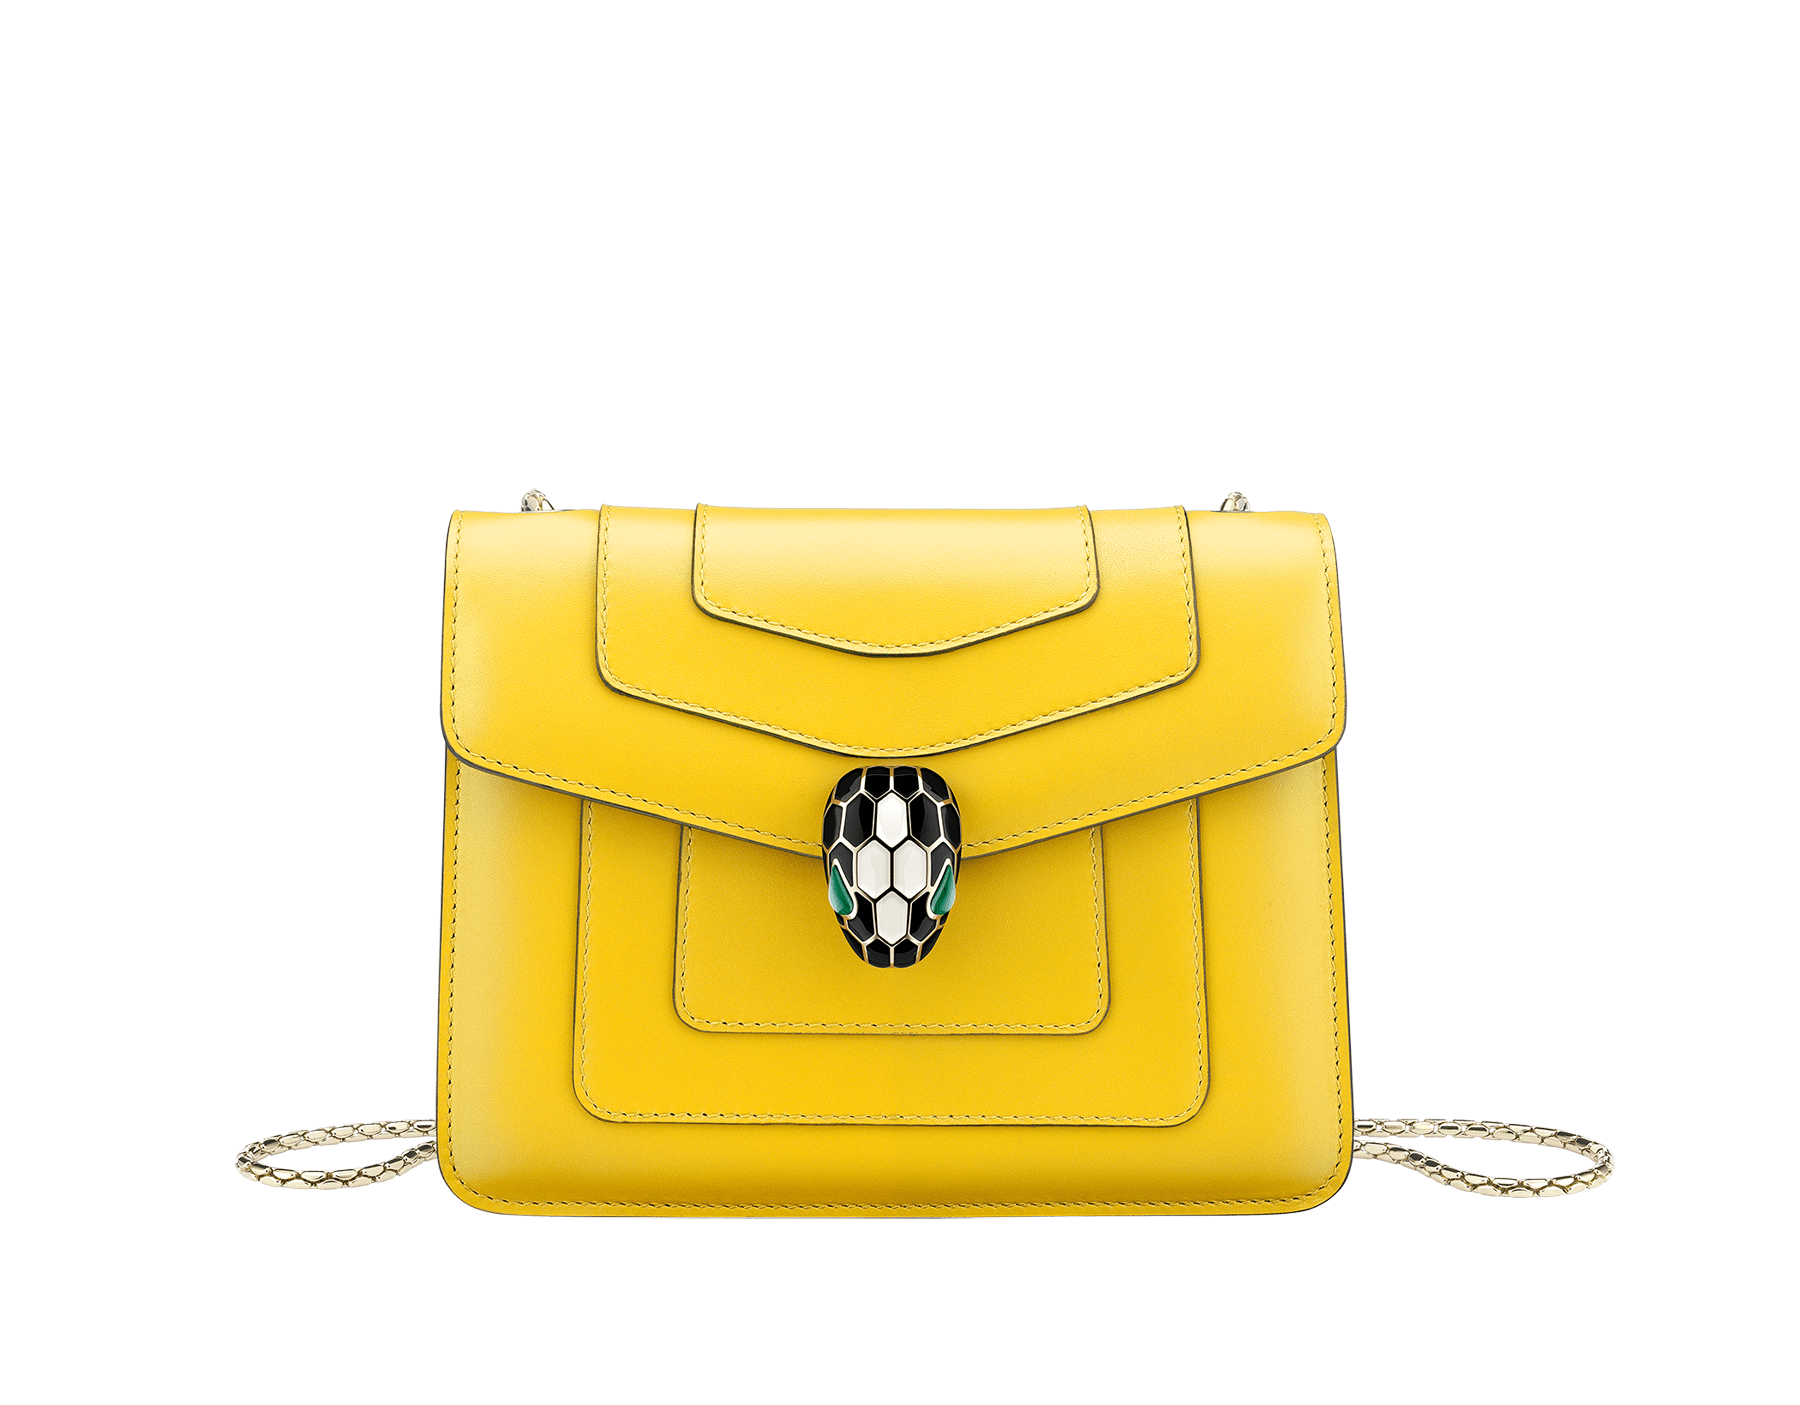 """Serpenti Forever"" crossbody bag in daisy topaz calf leather. Iconic snakehead closure in light gold plated brass enriched with black and white agate enamel, and green malachite eyes. 289650 image 1"